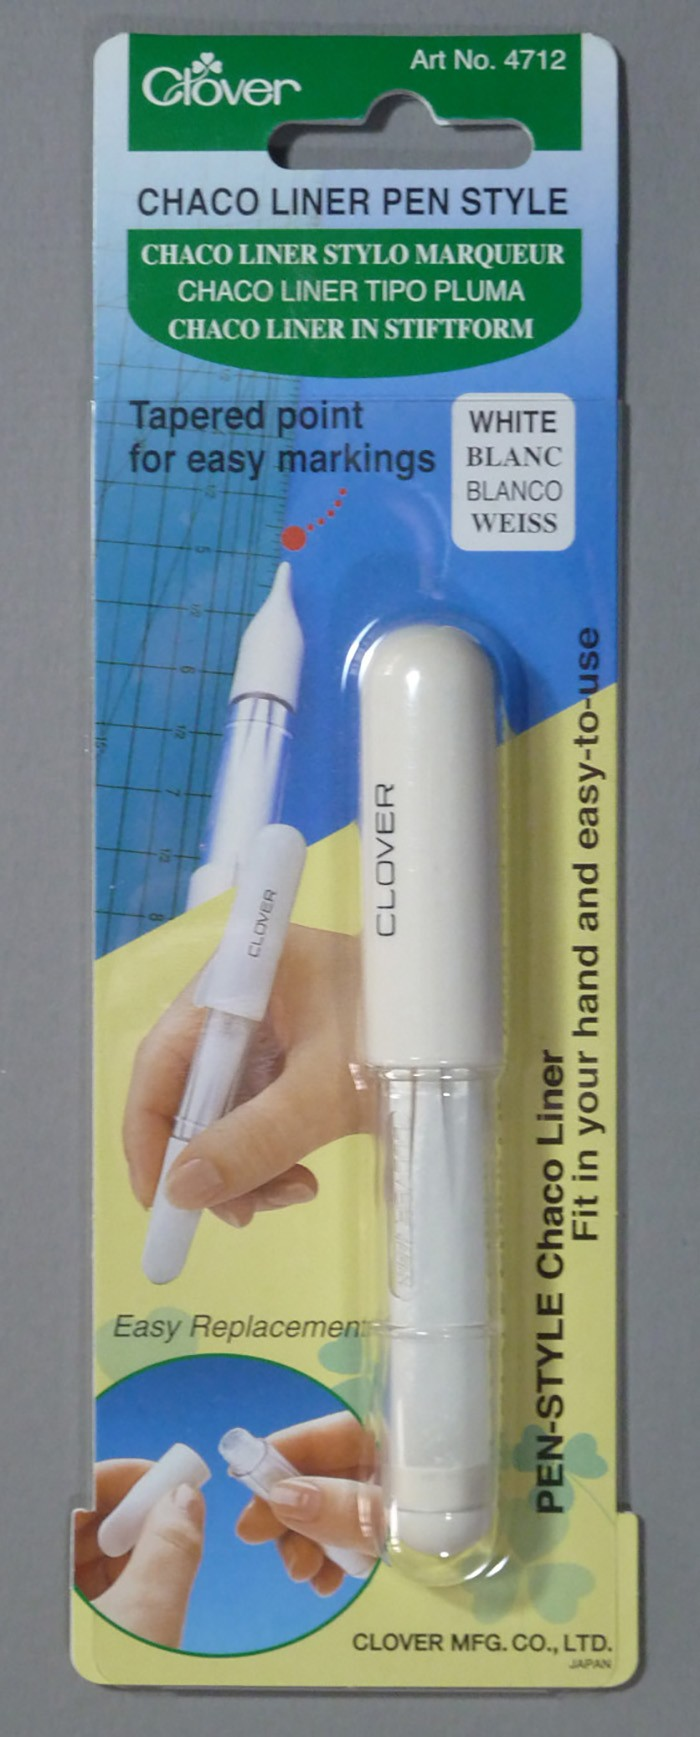 Clover Chaco Liner Pen Style White